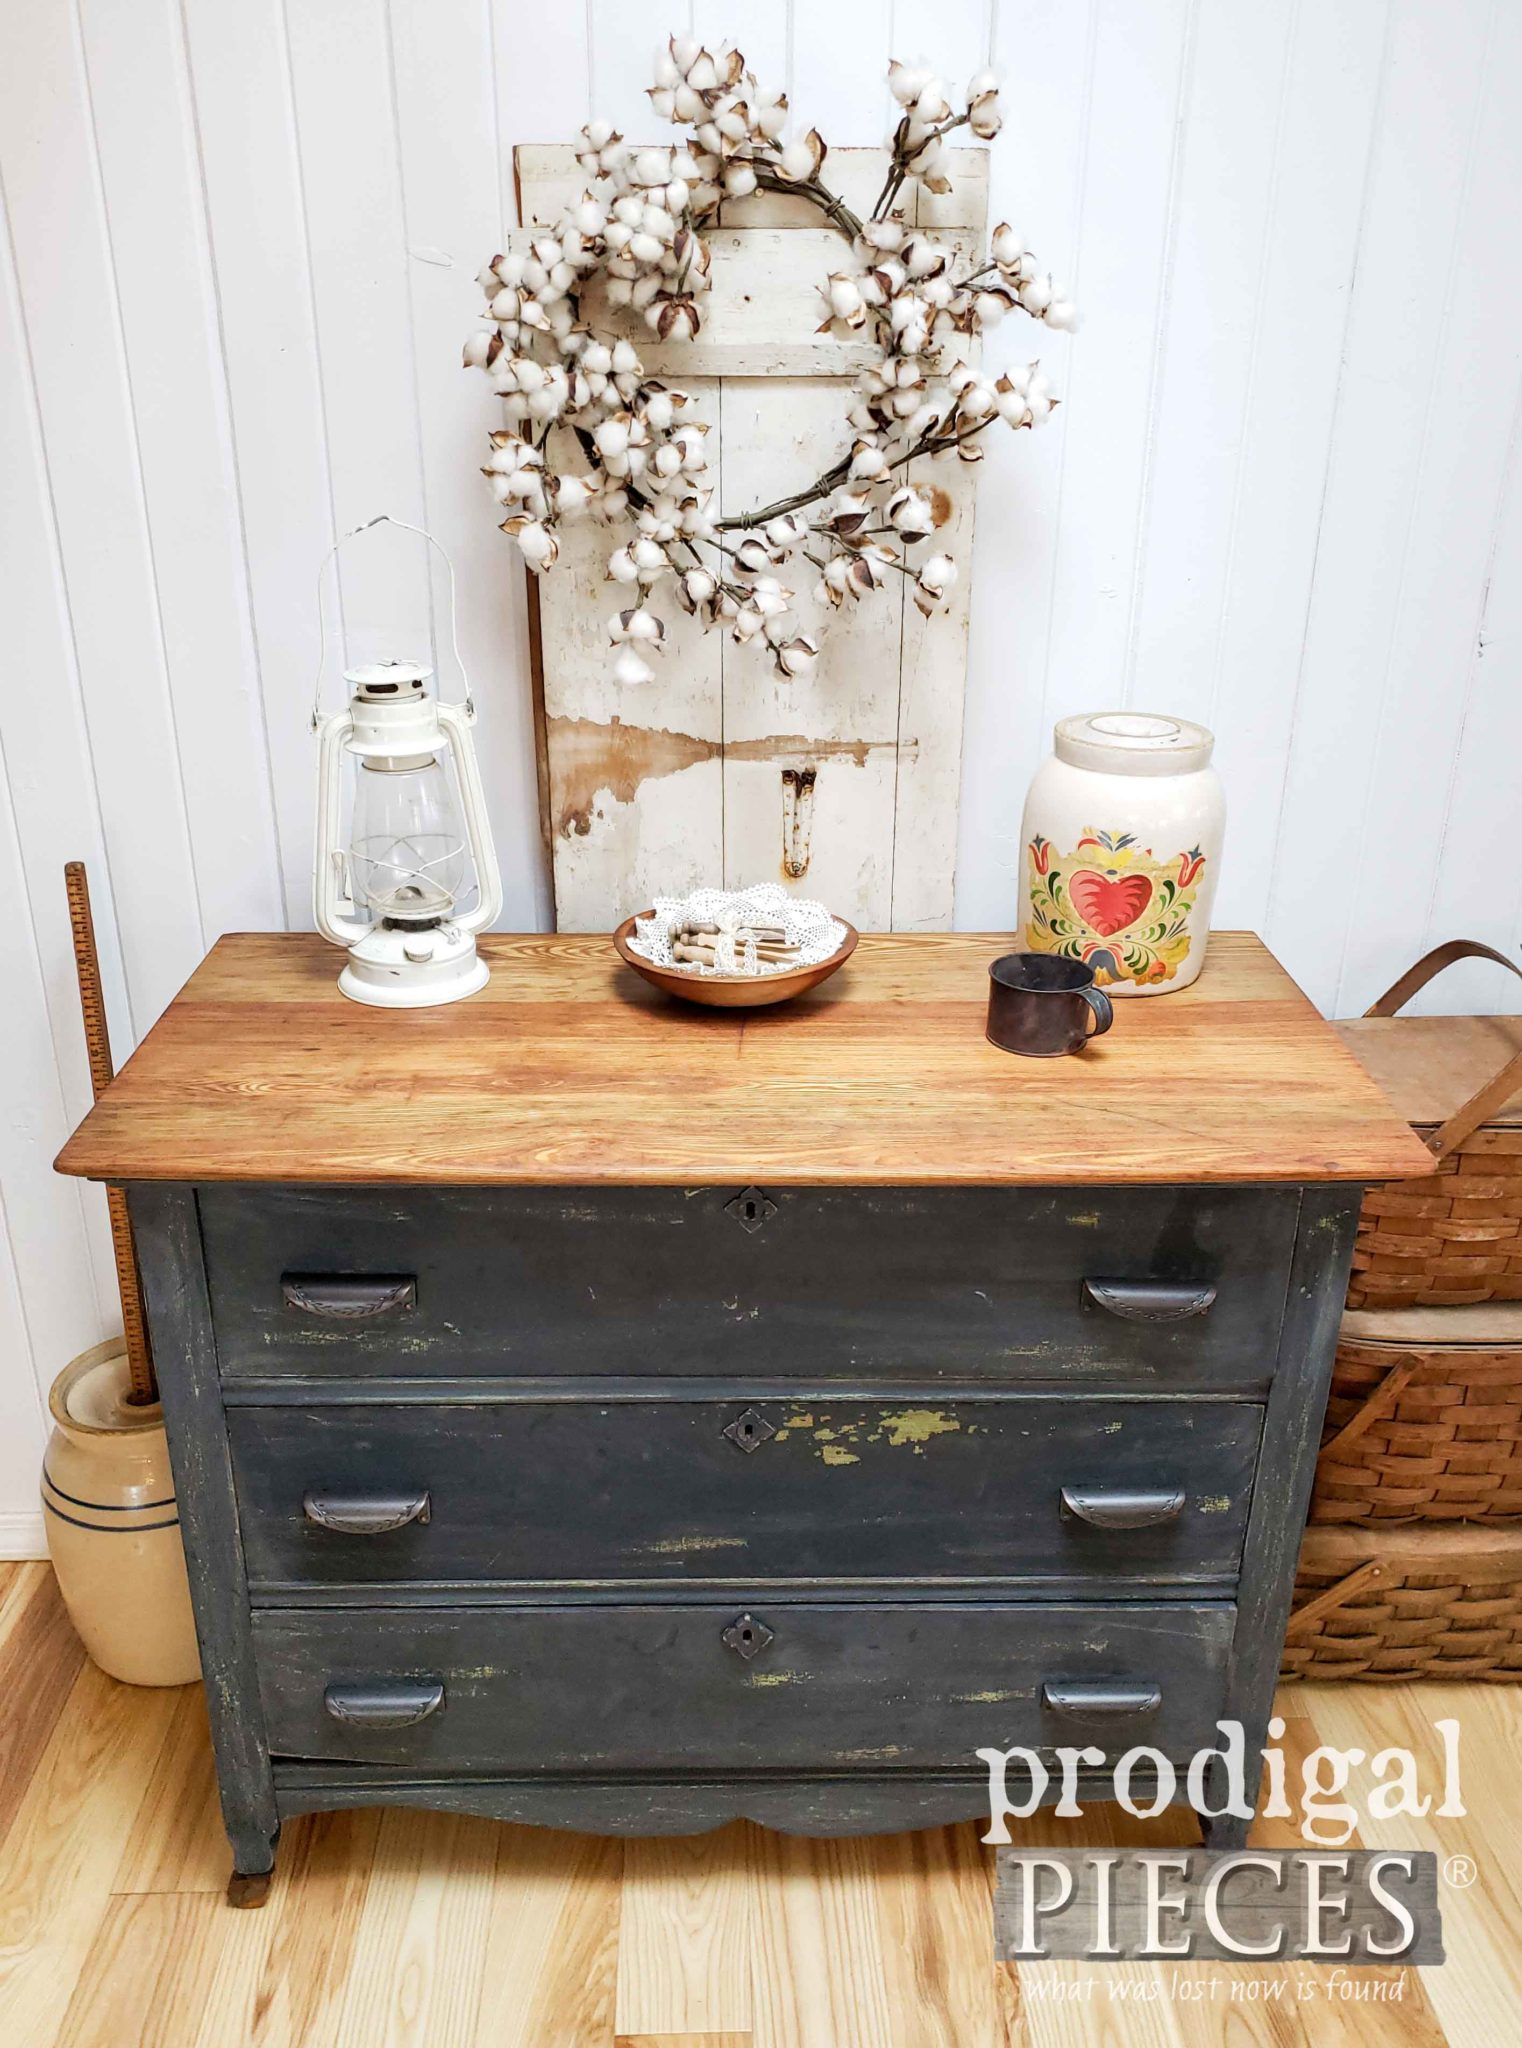 Antique Farmhouse Chest of Drawers with Chippy Milk Paint by Larissa of Prodigal Pieces | prodigalpieces.com #prodigalpieces #diy #farmhouse #furniture #handmade #home #homedecor